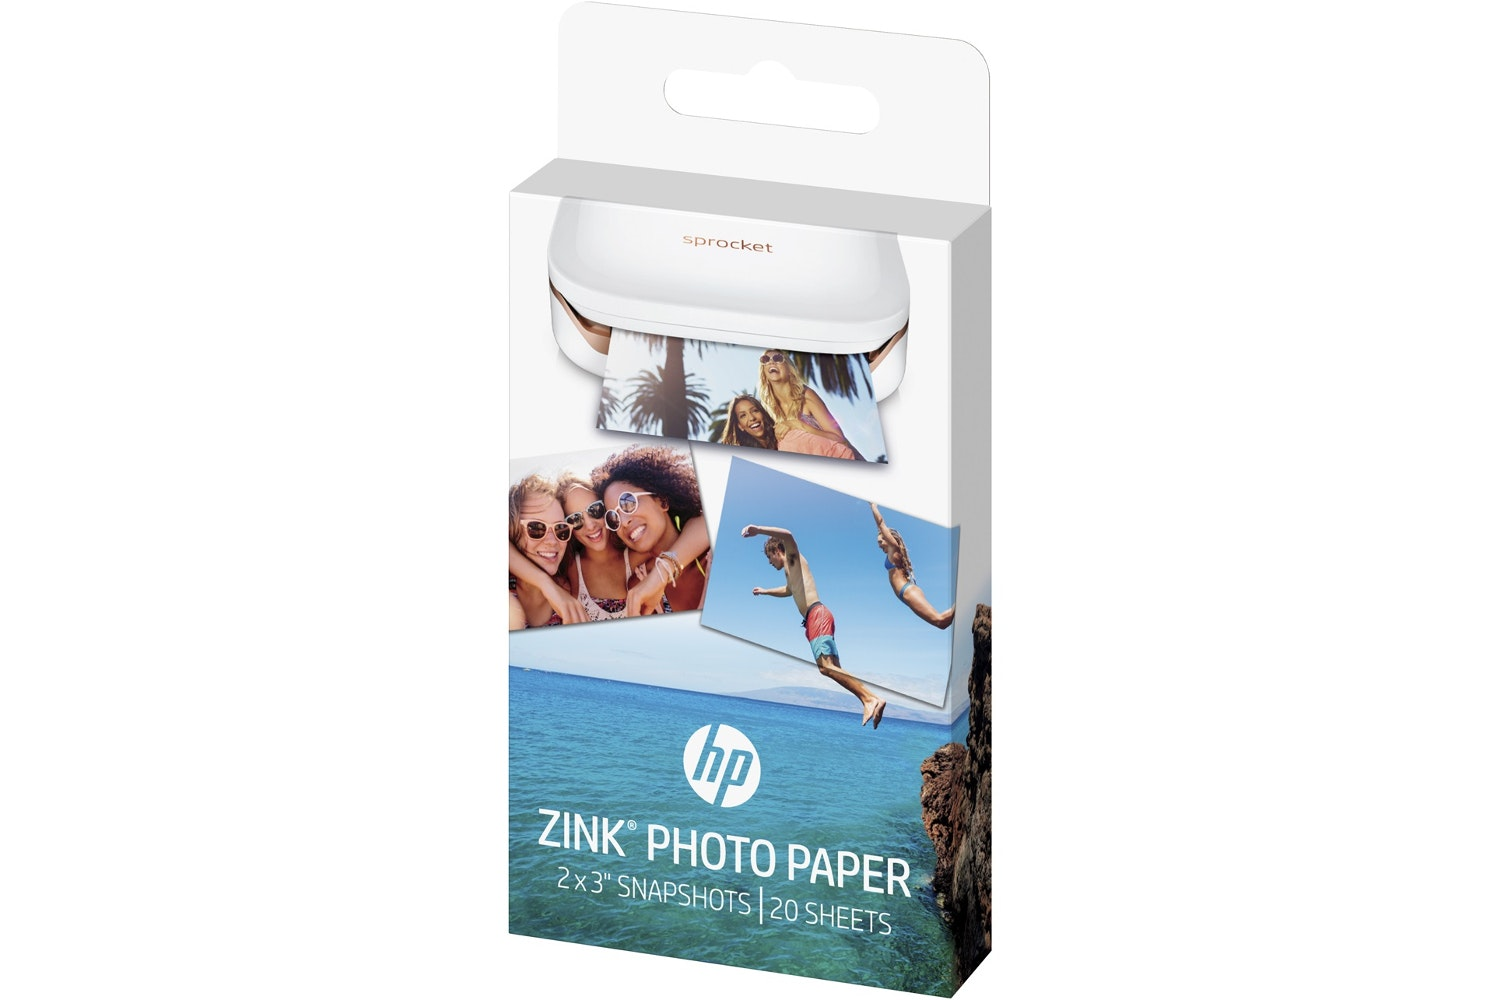 HP ZINK Paper for Sprocket Printer